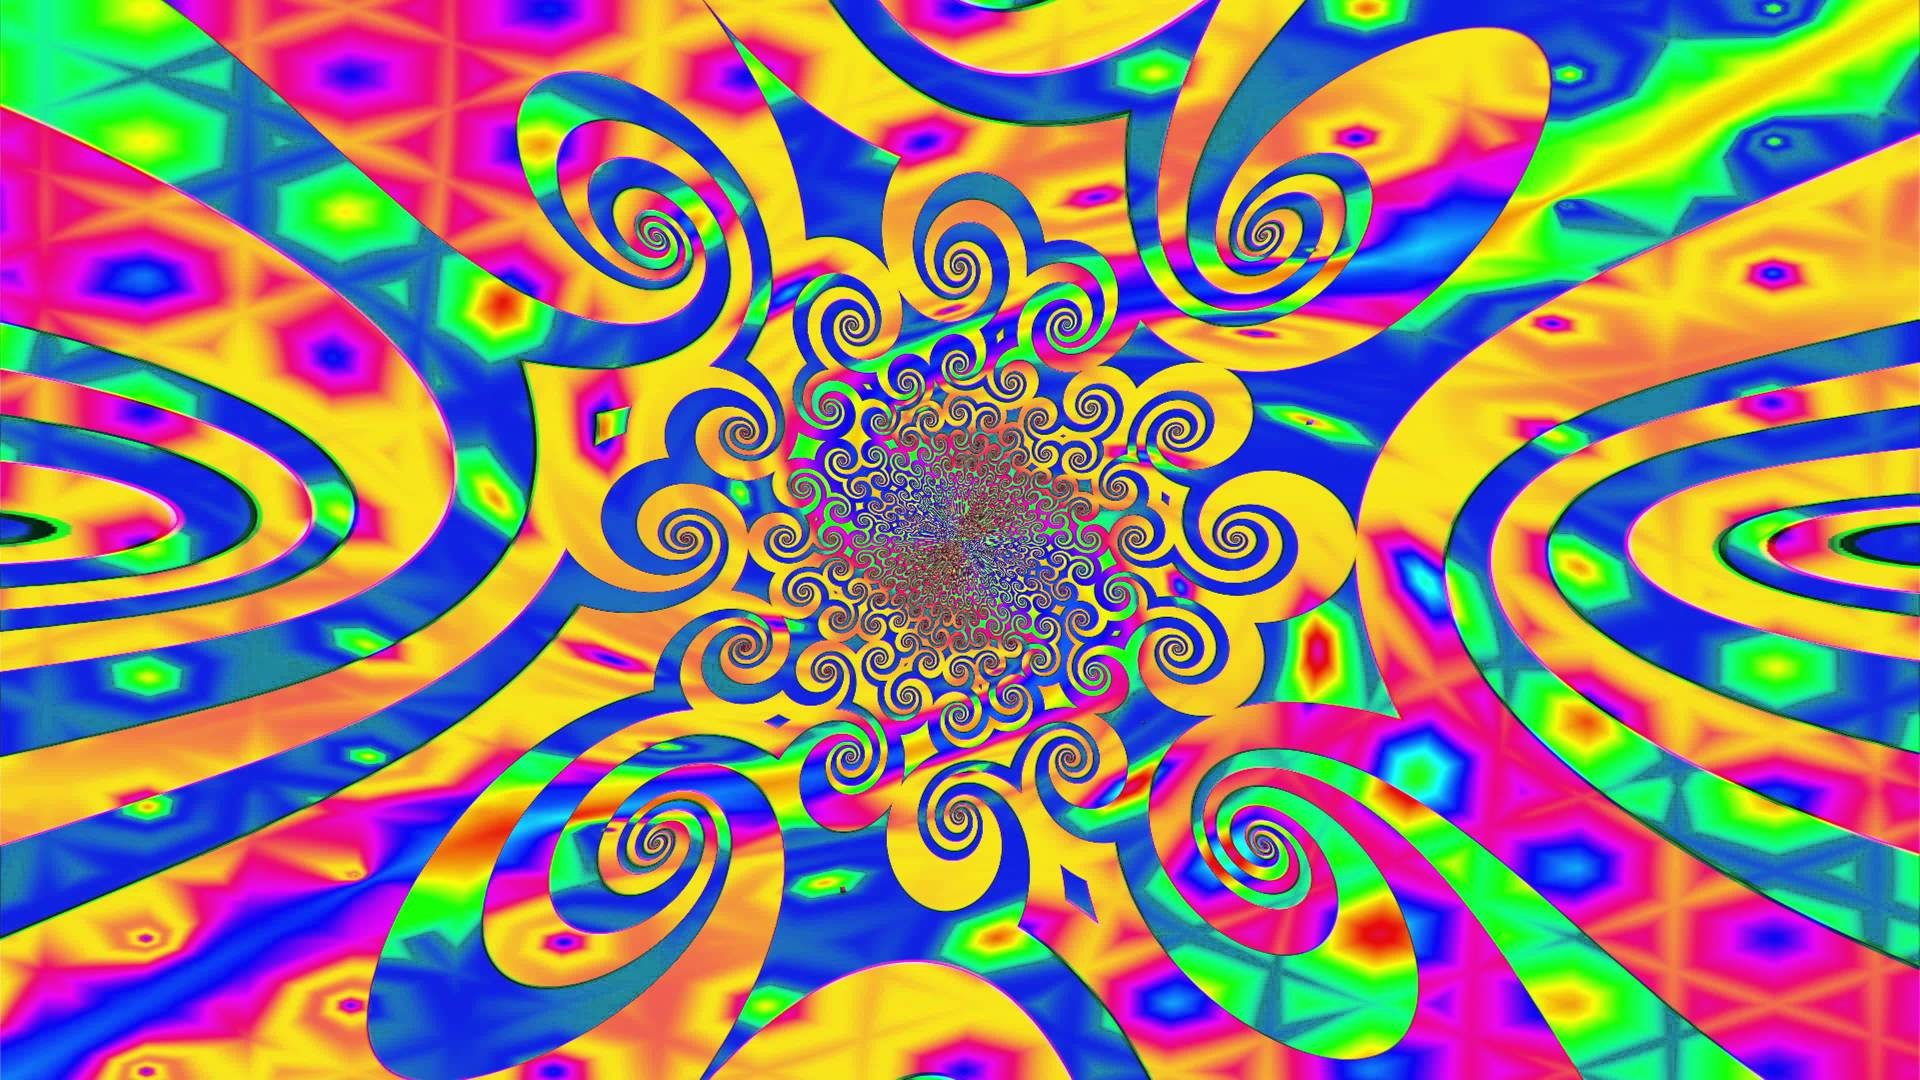 Psychedelic Wallpapers. trippy-backgrounds Trippy Background HD.  trippy-backgrounds